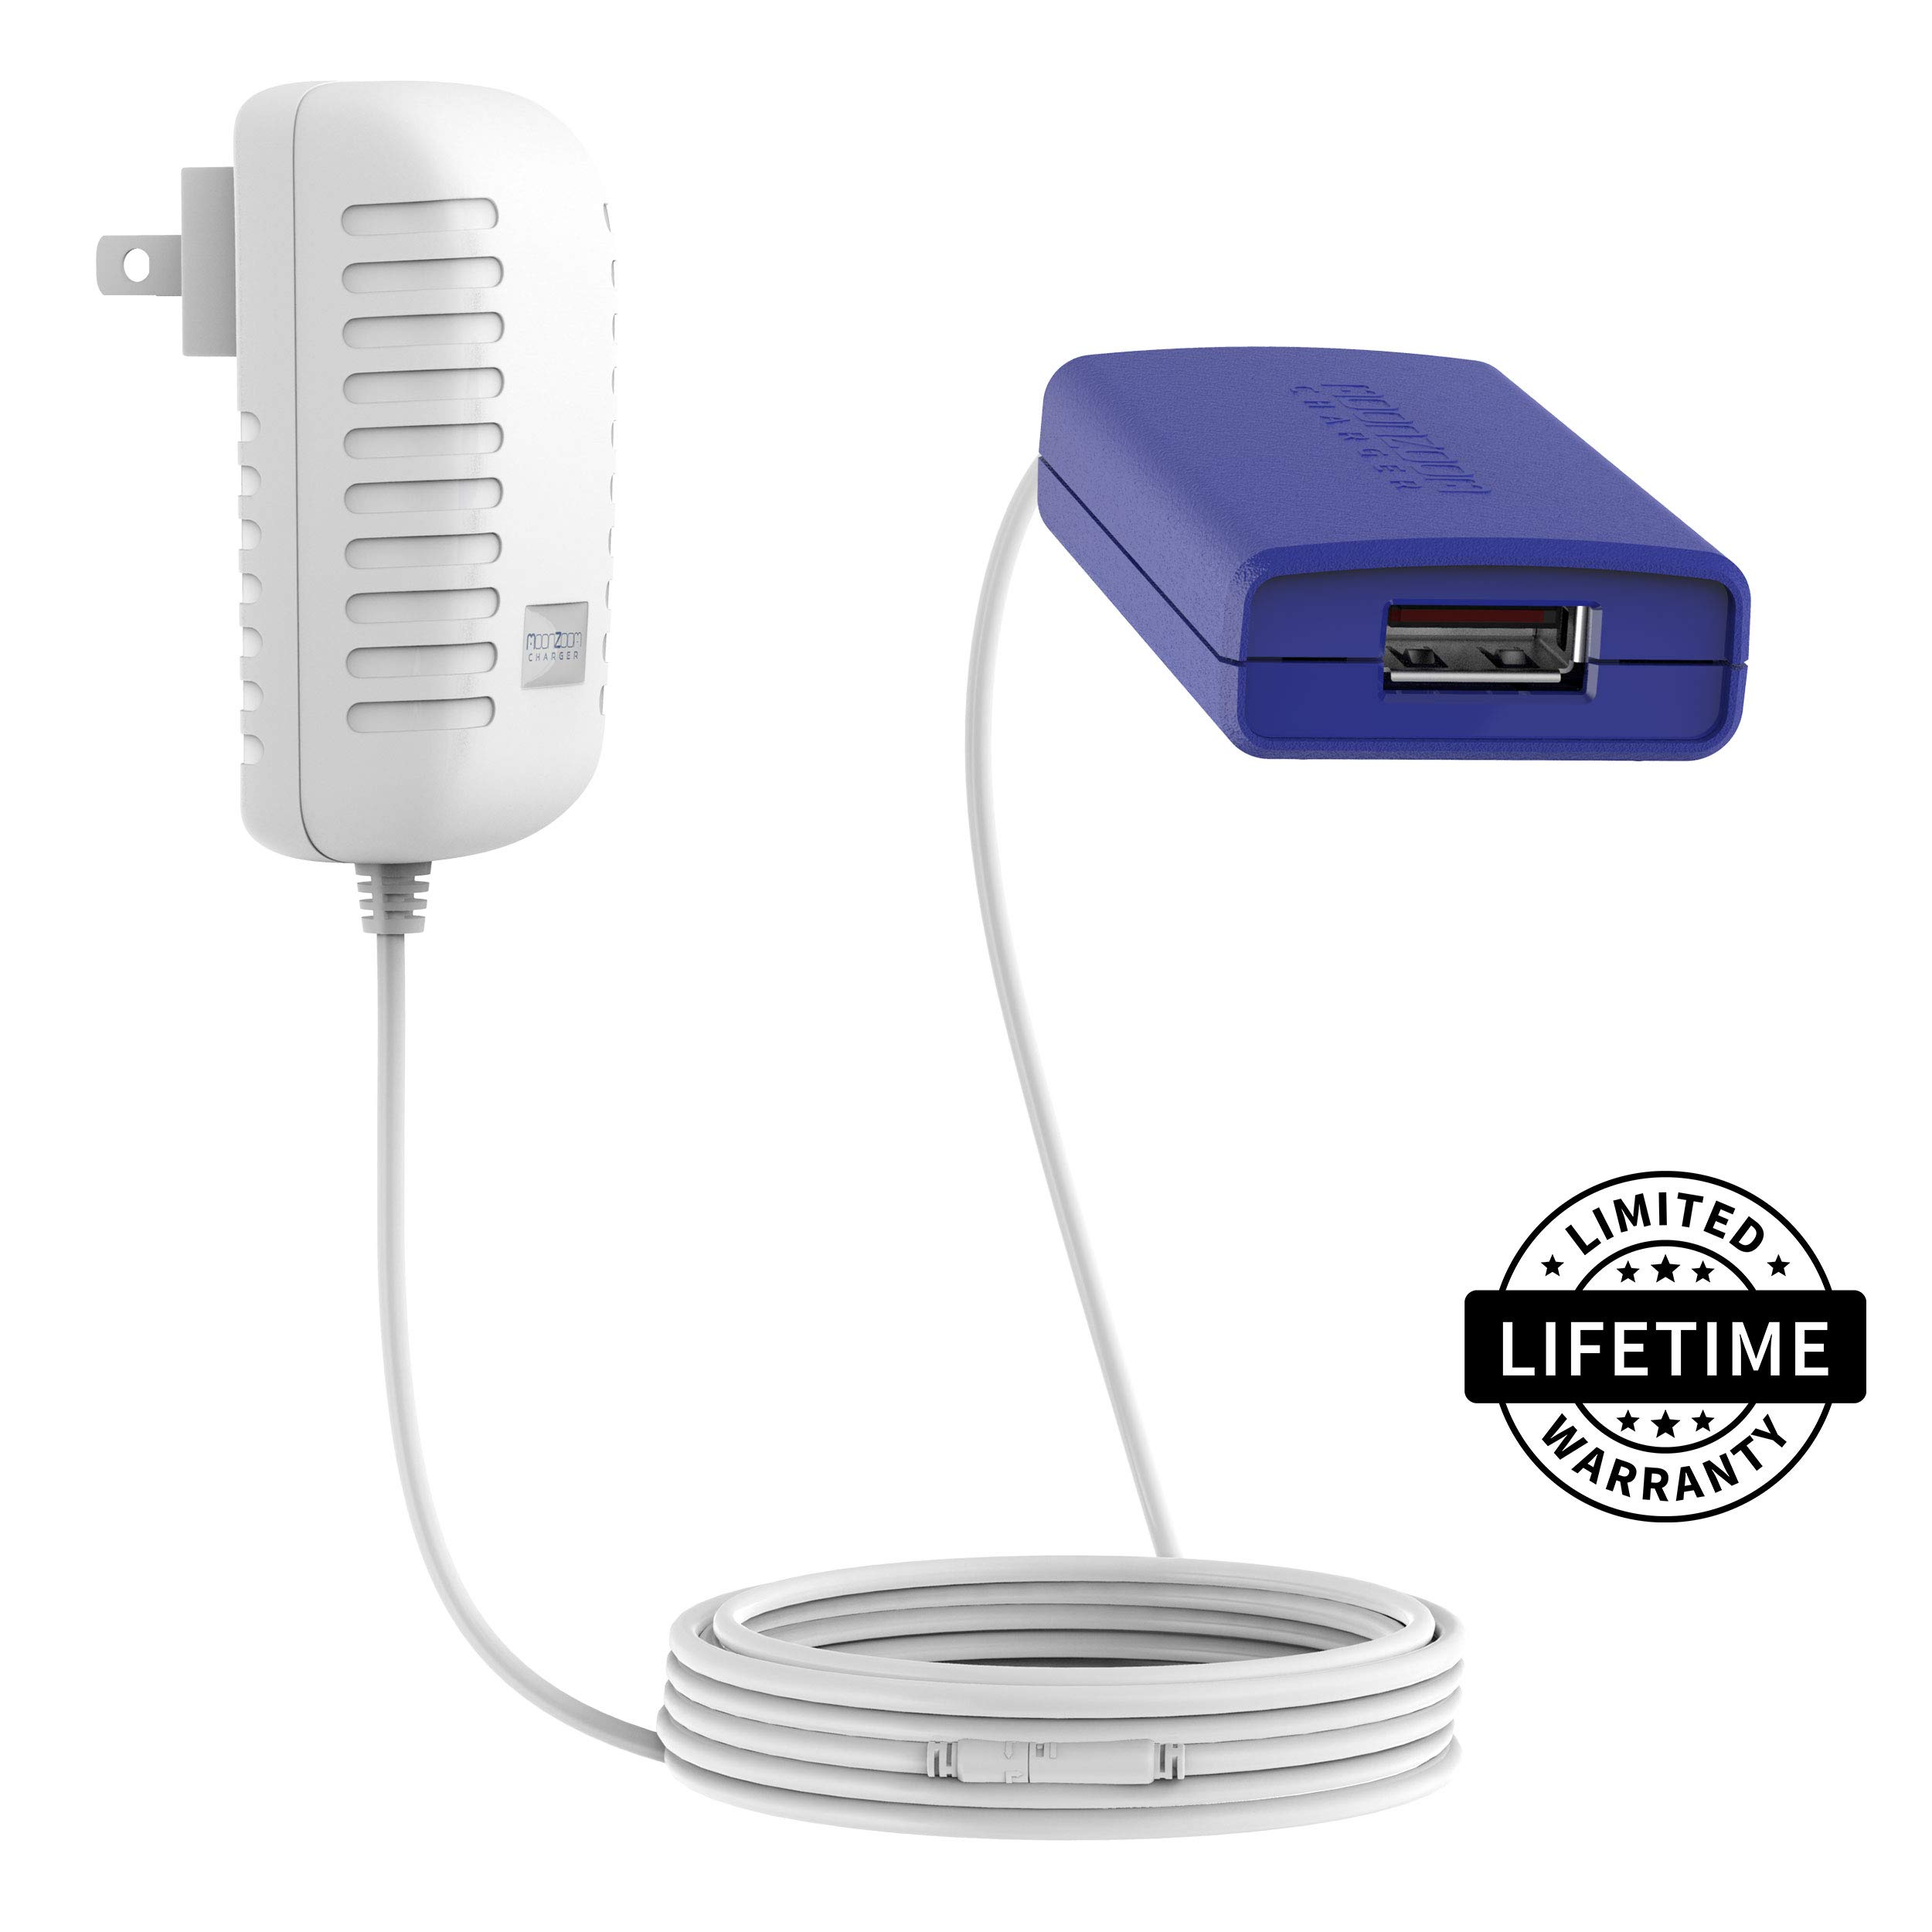 MOONZOOM USB Wall Charger w Long, Extendable Charging Cable 10ft/15ft/25ft/30ft, World's Longest Fast-Charge Cord, Compatible w iPhone X/8/7/6/5 Plus, iPad, Samsung S5-S10, Tablet 20ft Lightning More by MOONZOOM